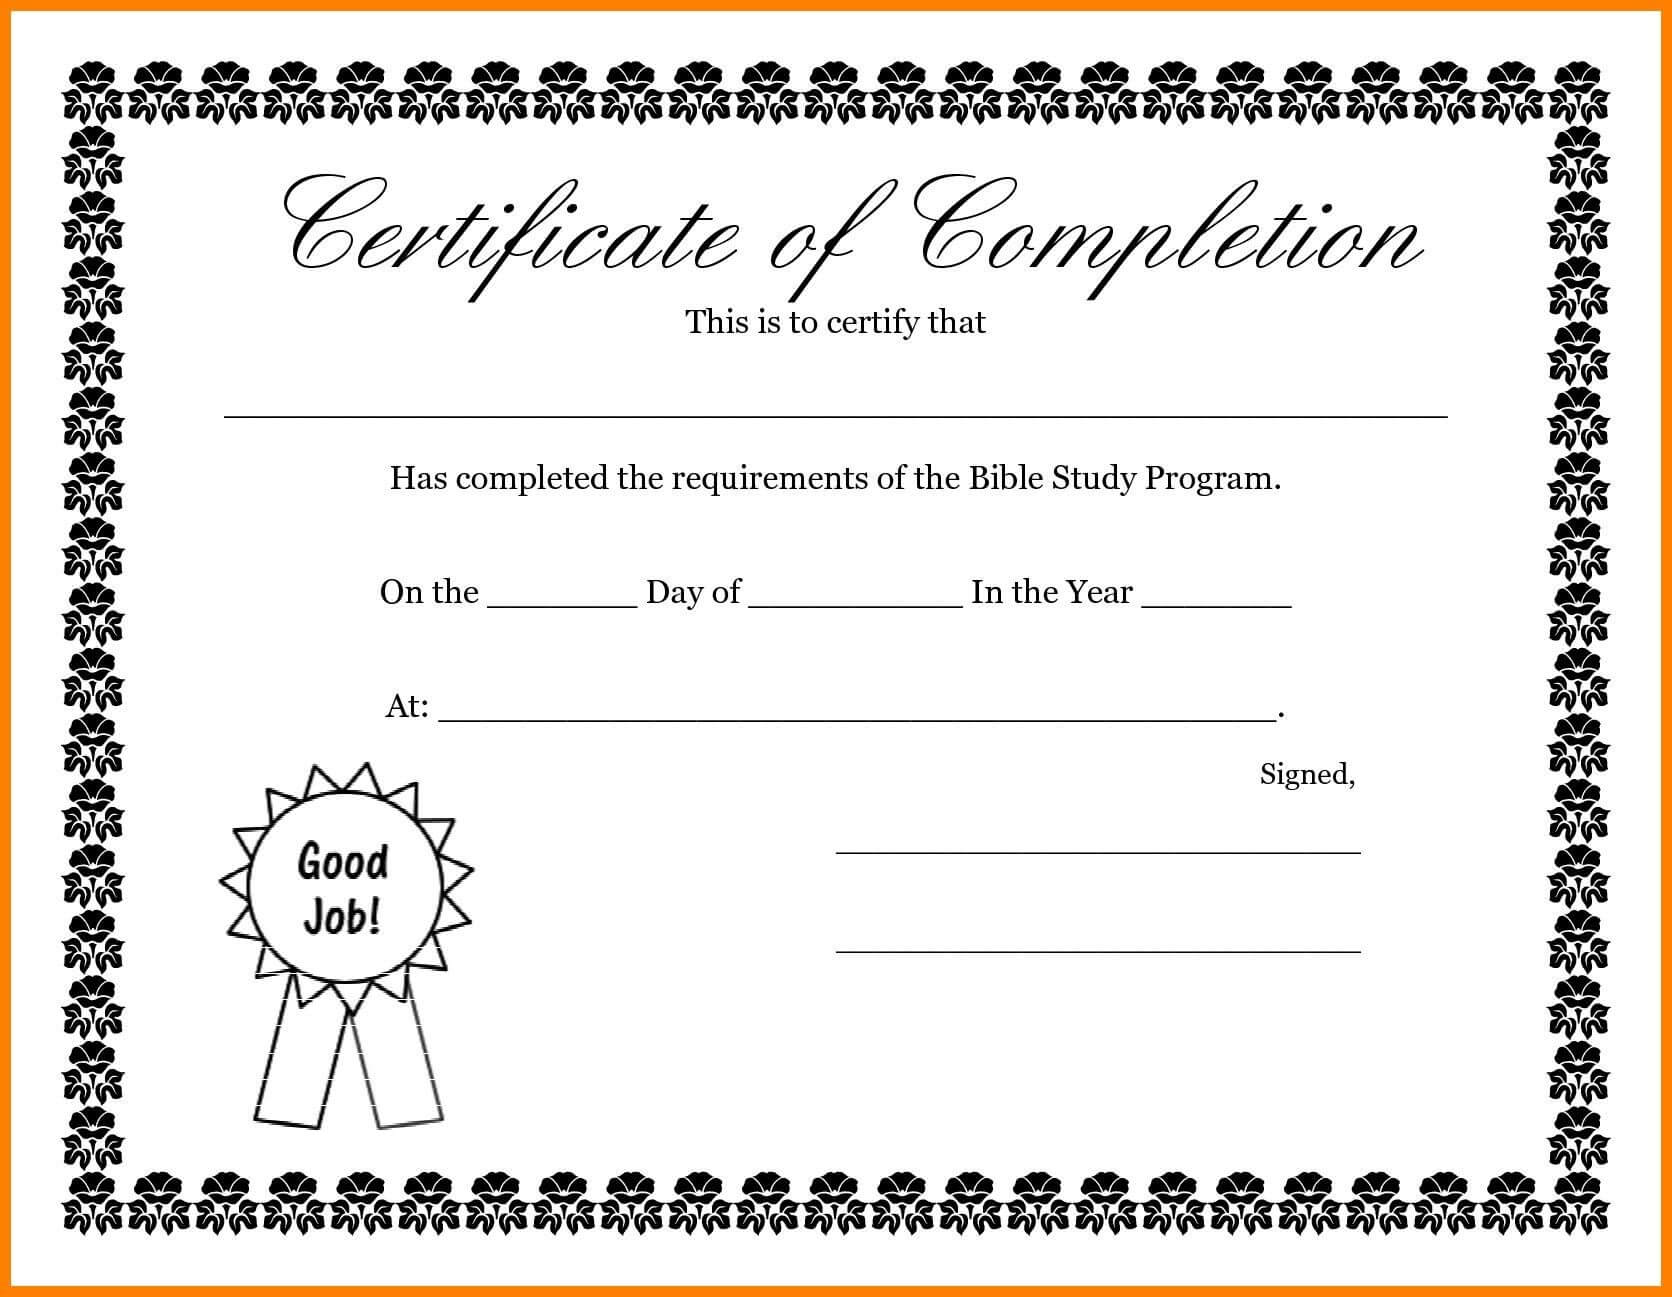 Certificates. New Free Completion Certificate Templates For within Free Completion Certificate Templates For Word